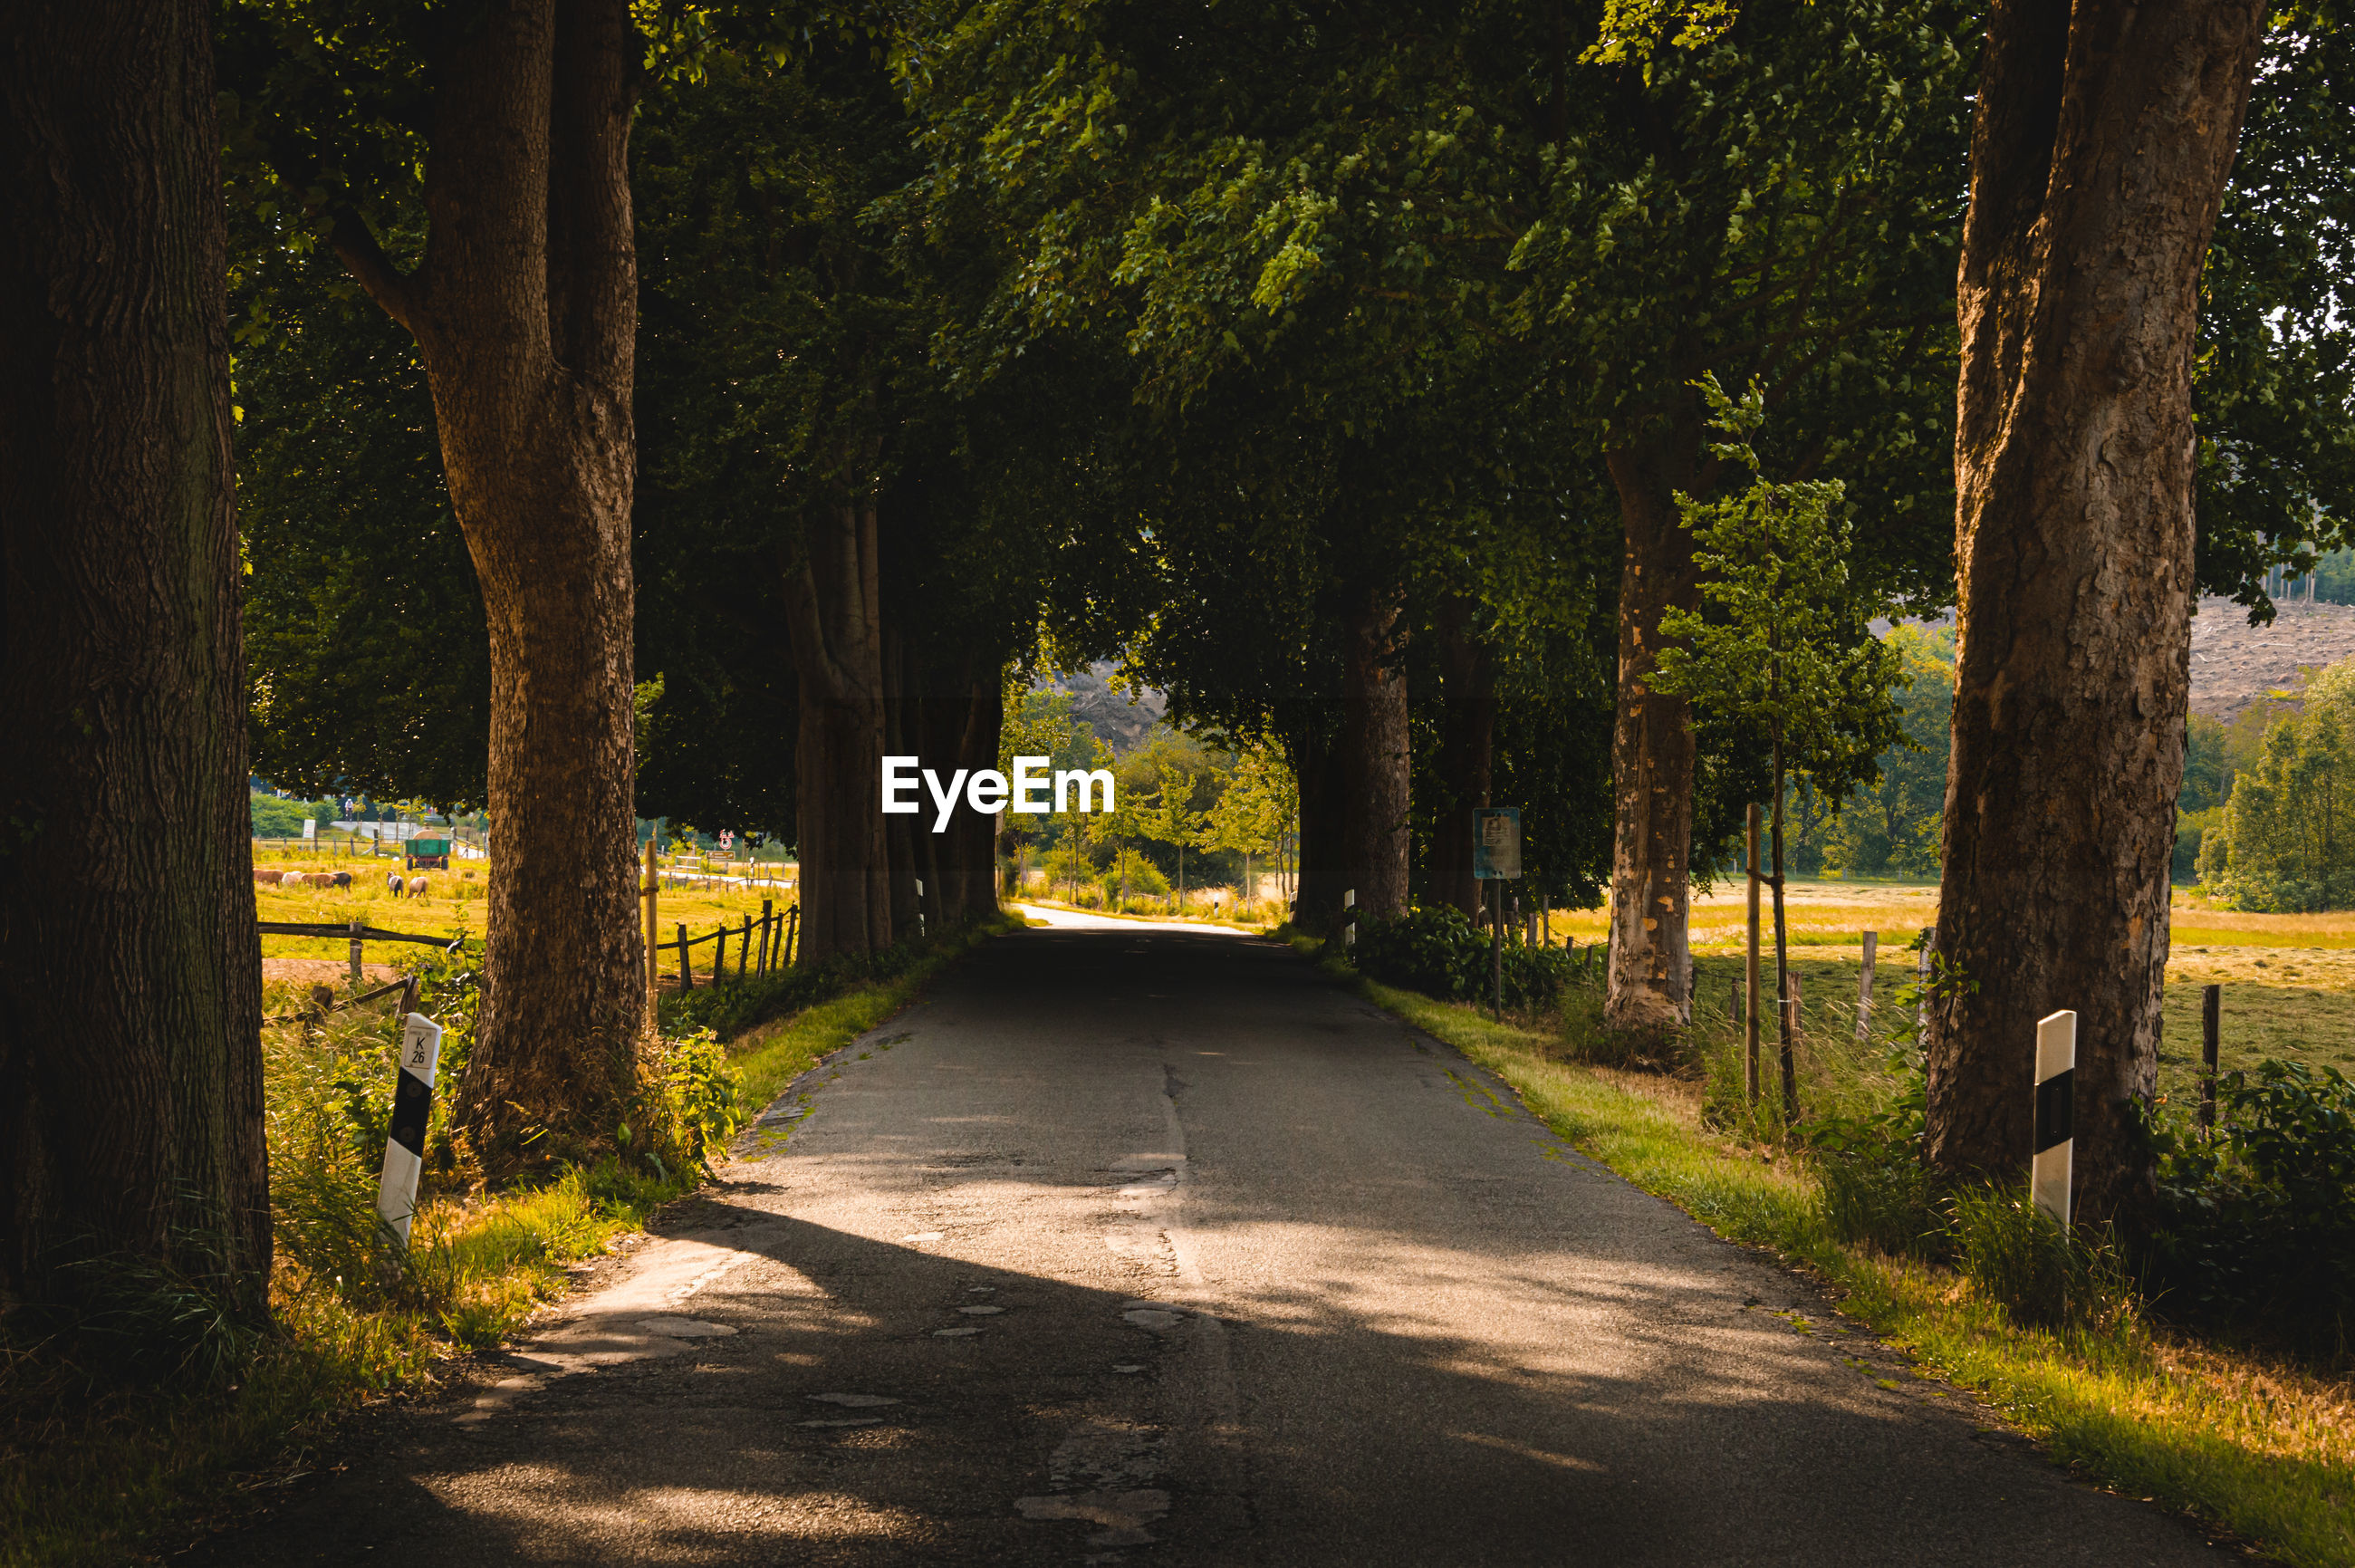 EMPTY ROAD AMIDST TREES AND PLANTS